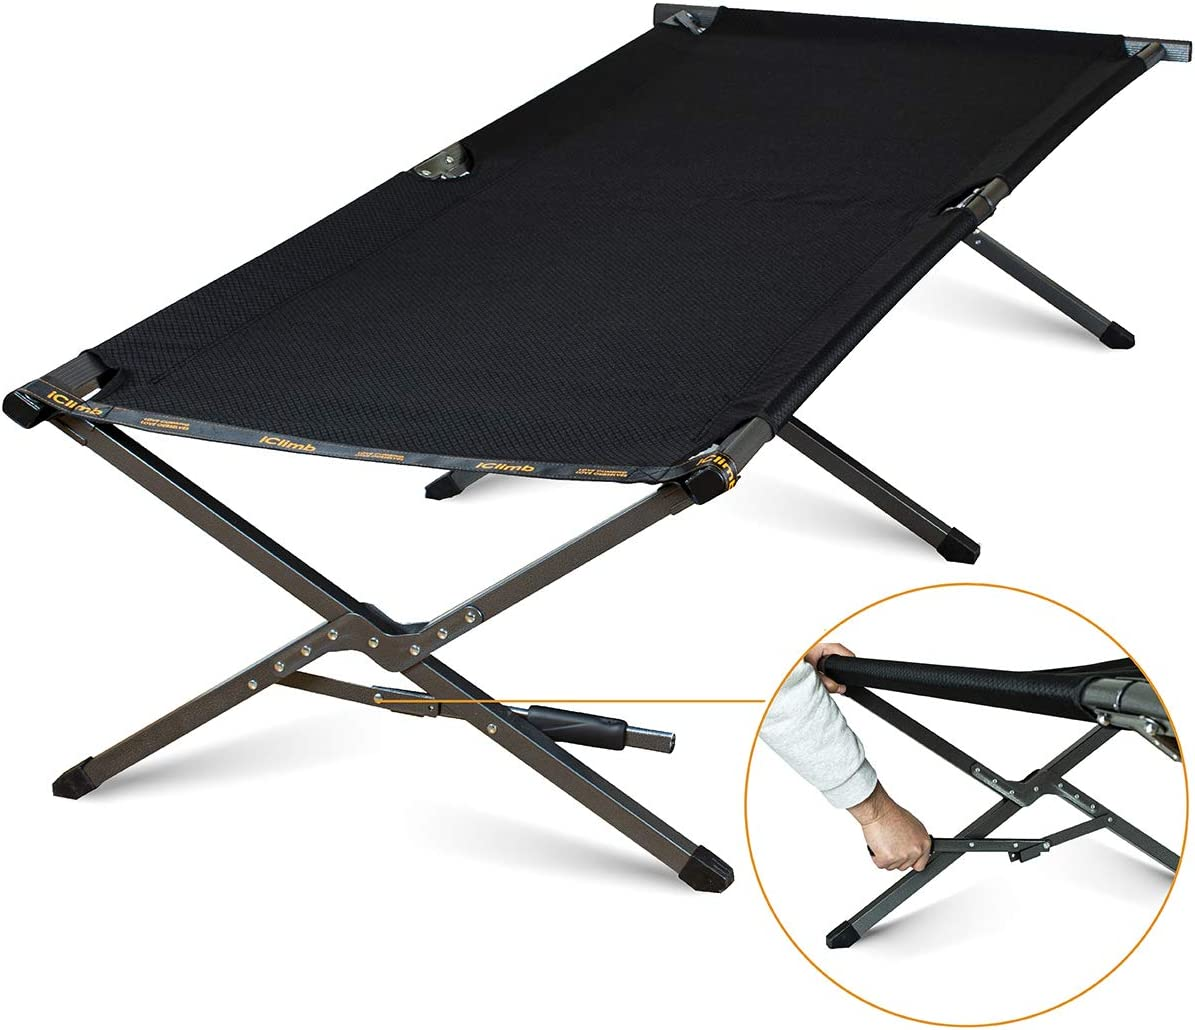 EVER ADVANCED Folding Portable Camping Cot XL Pack-Away Tent Sleeping Cot Bed with Side Pockets Carry Bag and Side Pockets